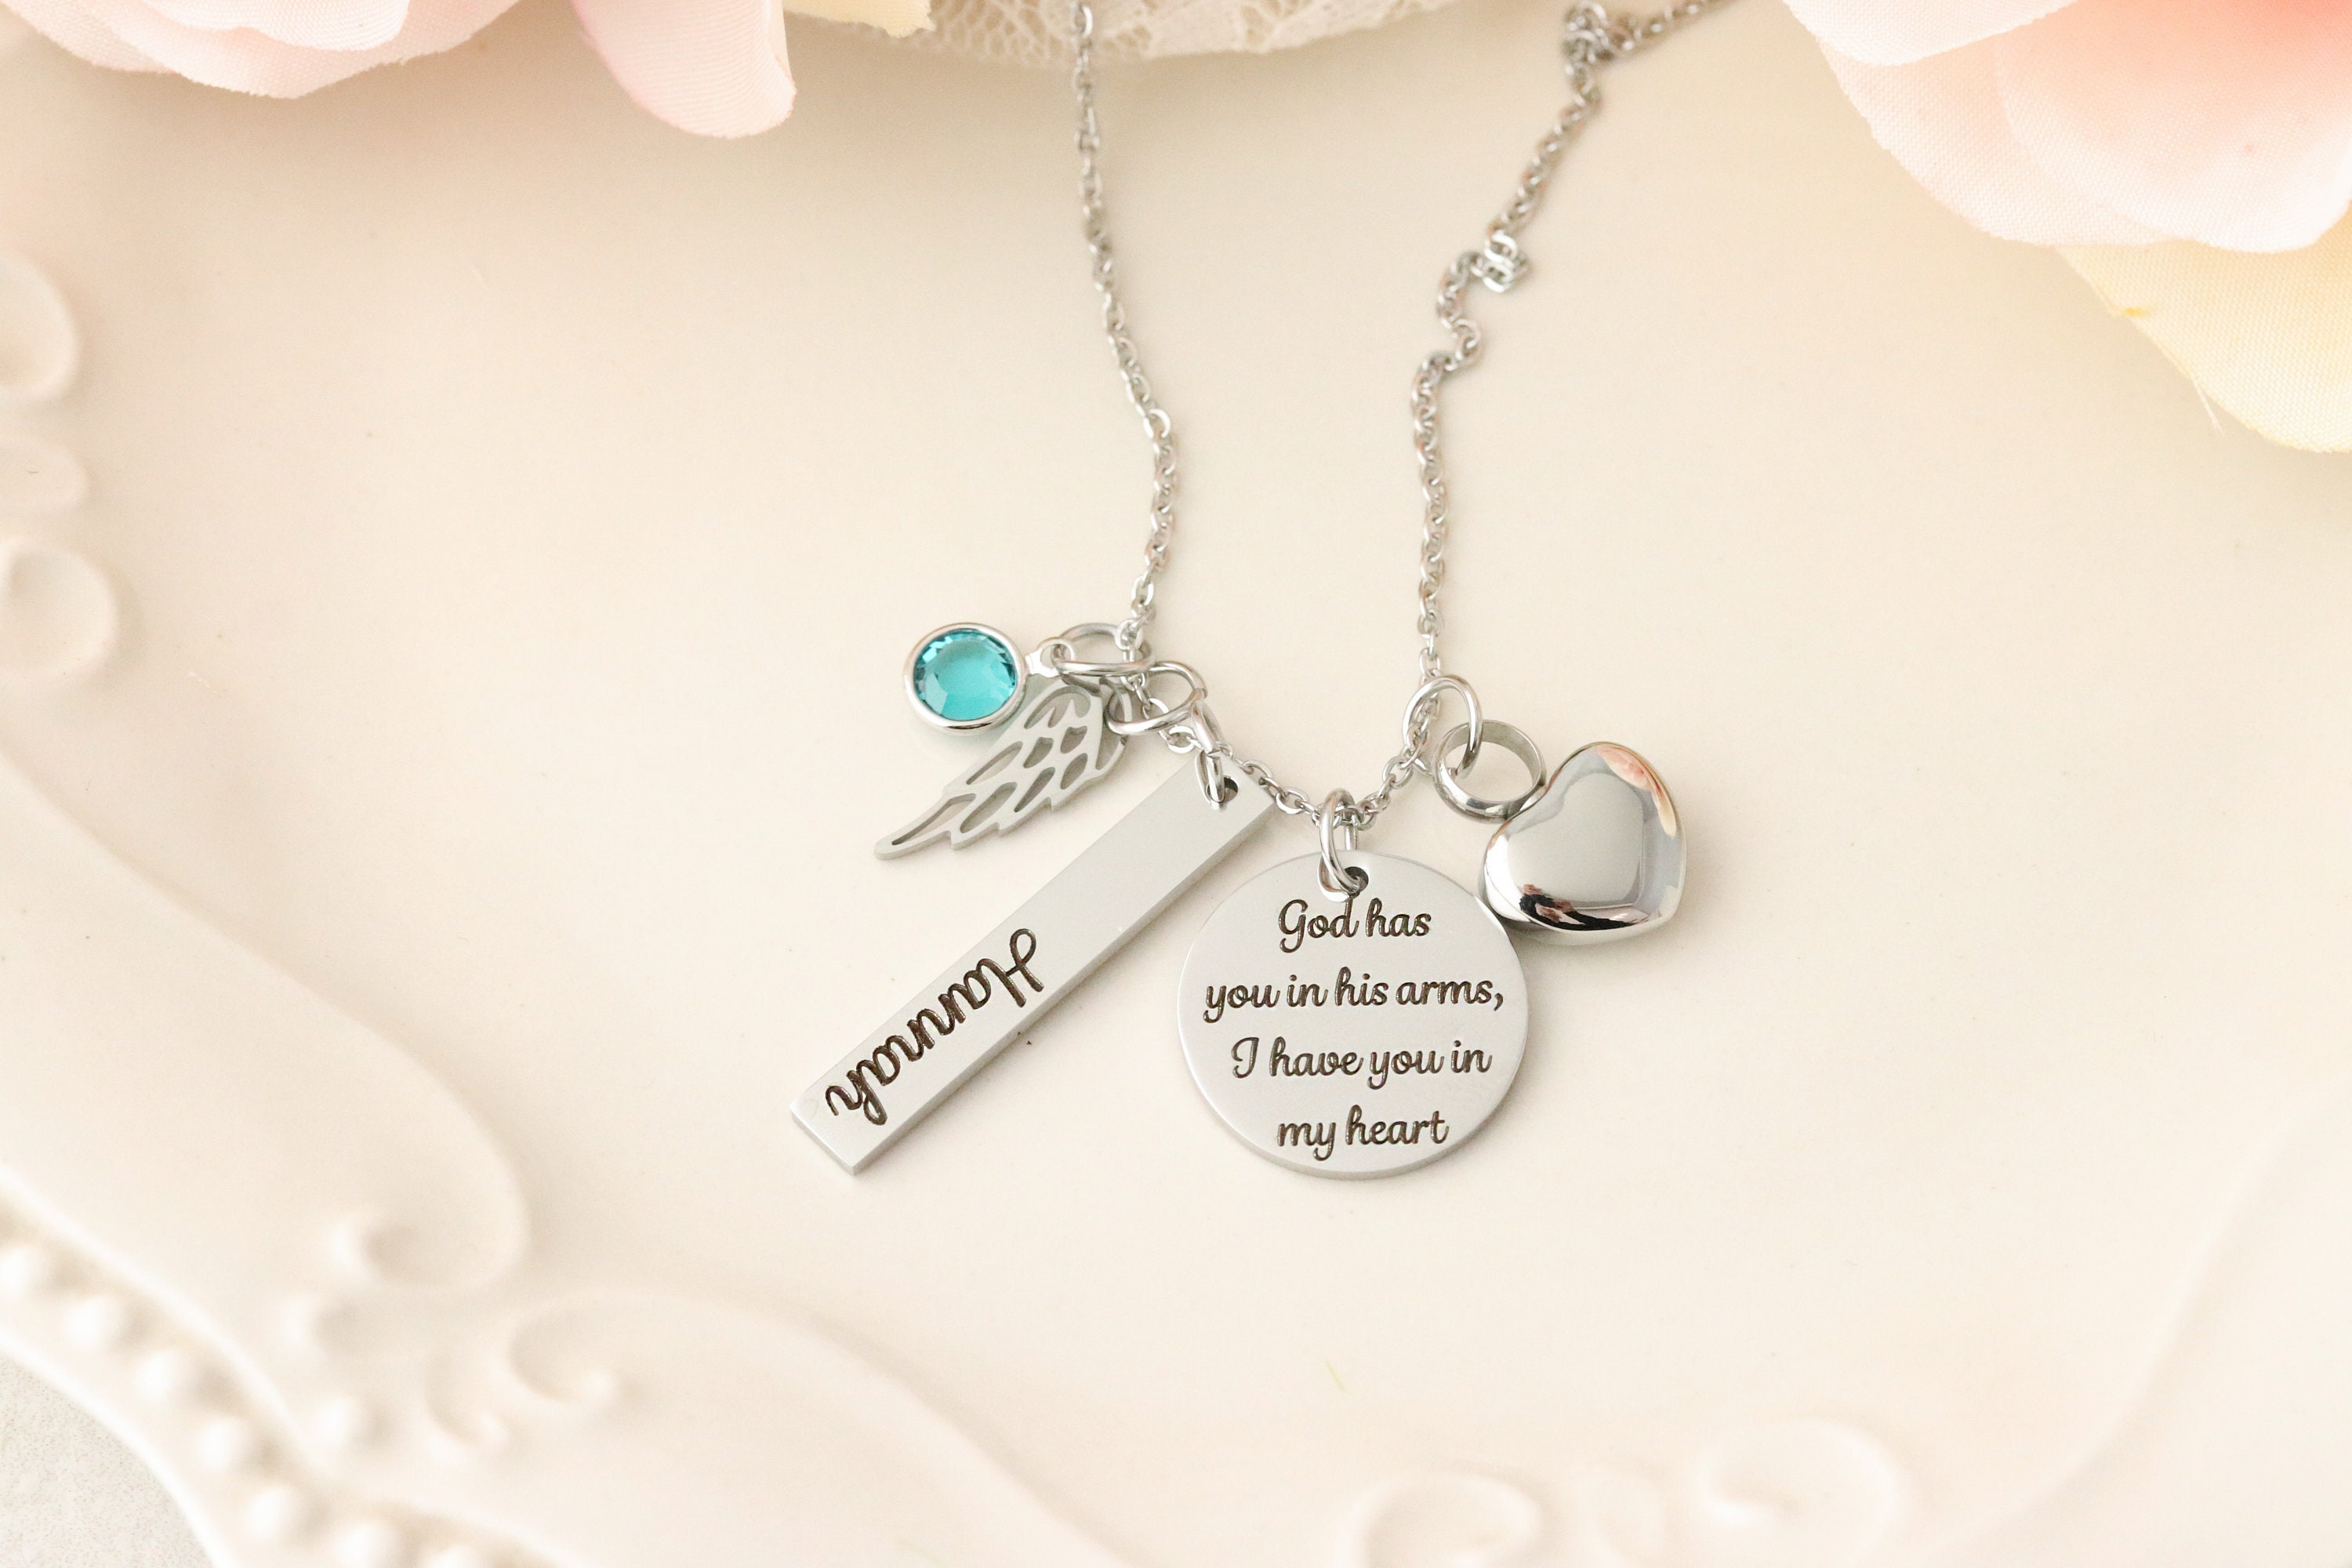 Cremation Memorial Necklace Memorial Urn Necklace Personalized